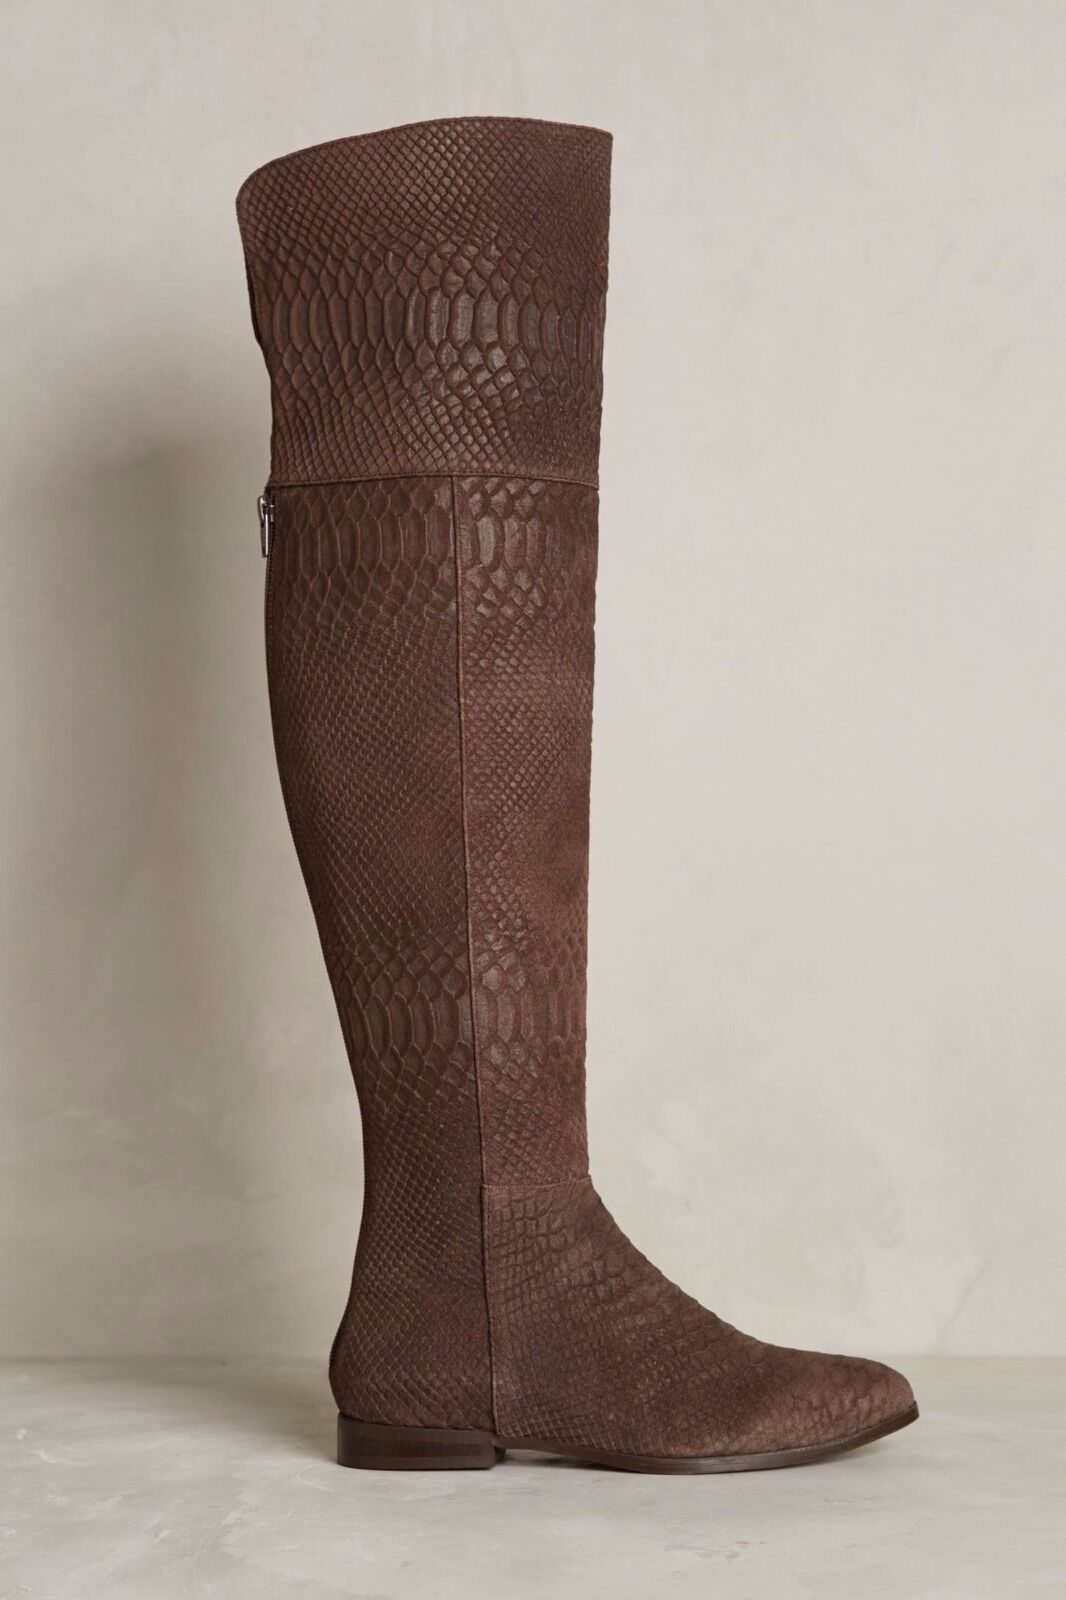 NWOB Seychelles Over the Knee Thigh High Brown Leather Boots Anthropologie Sz6.5